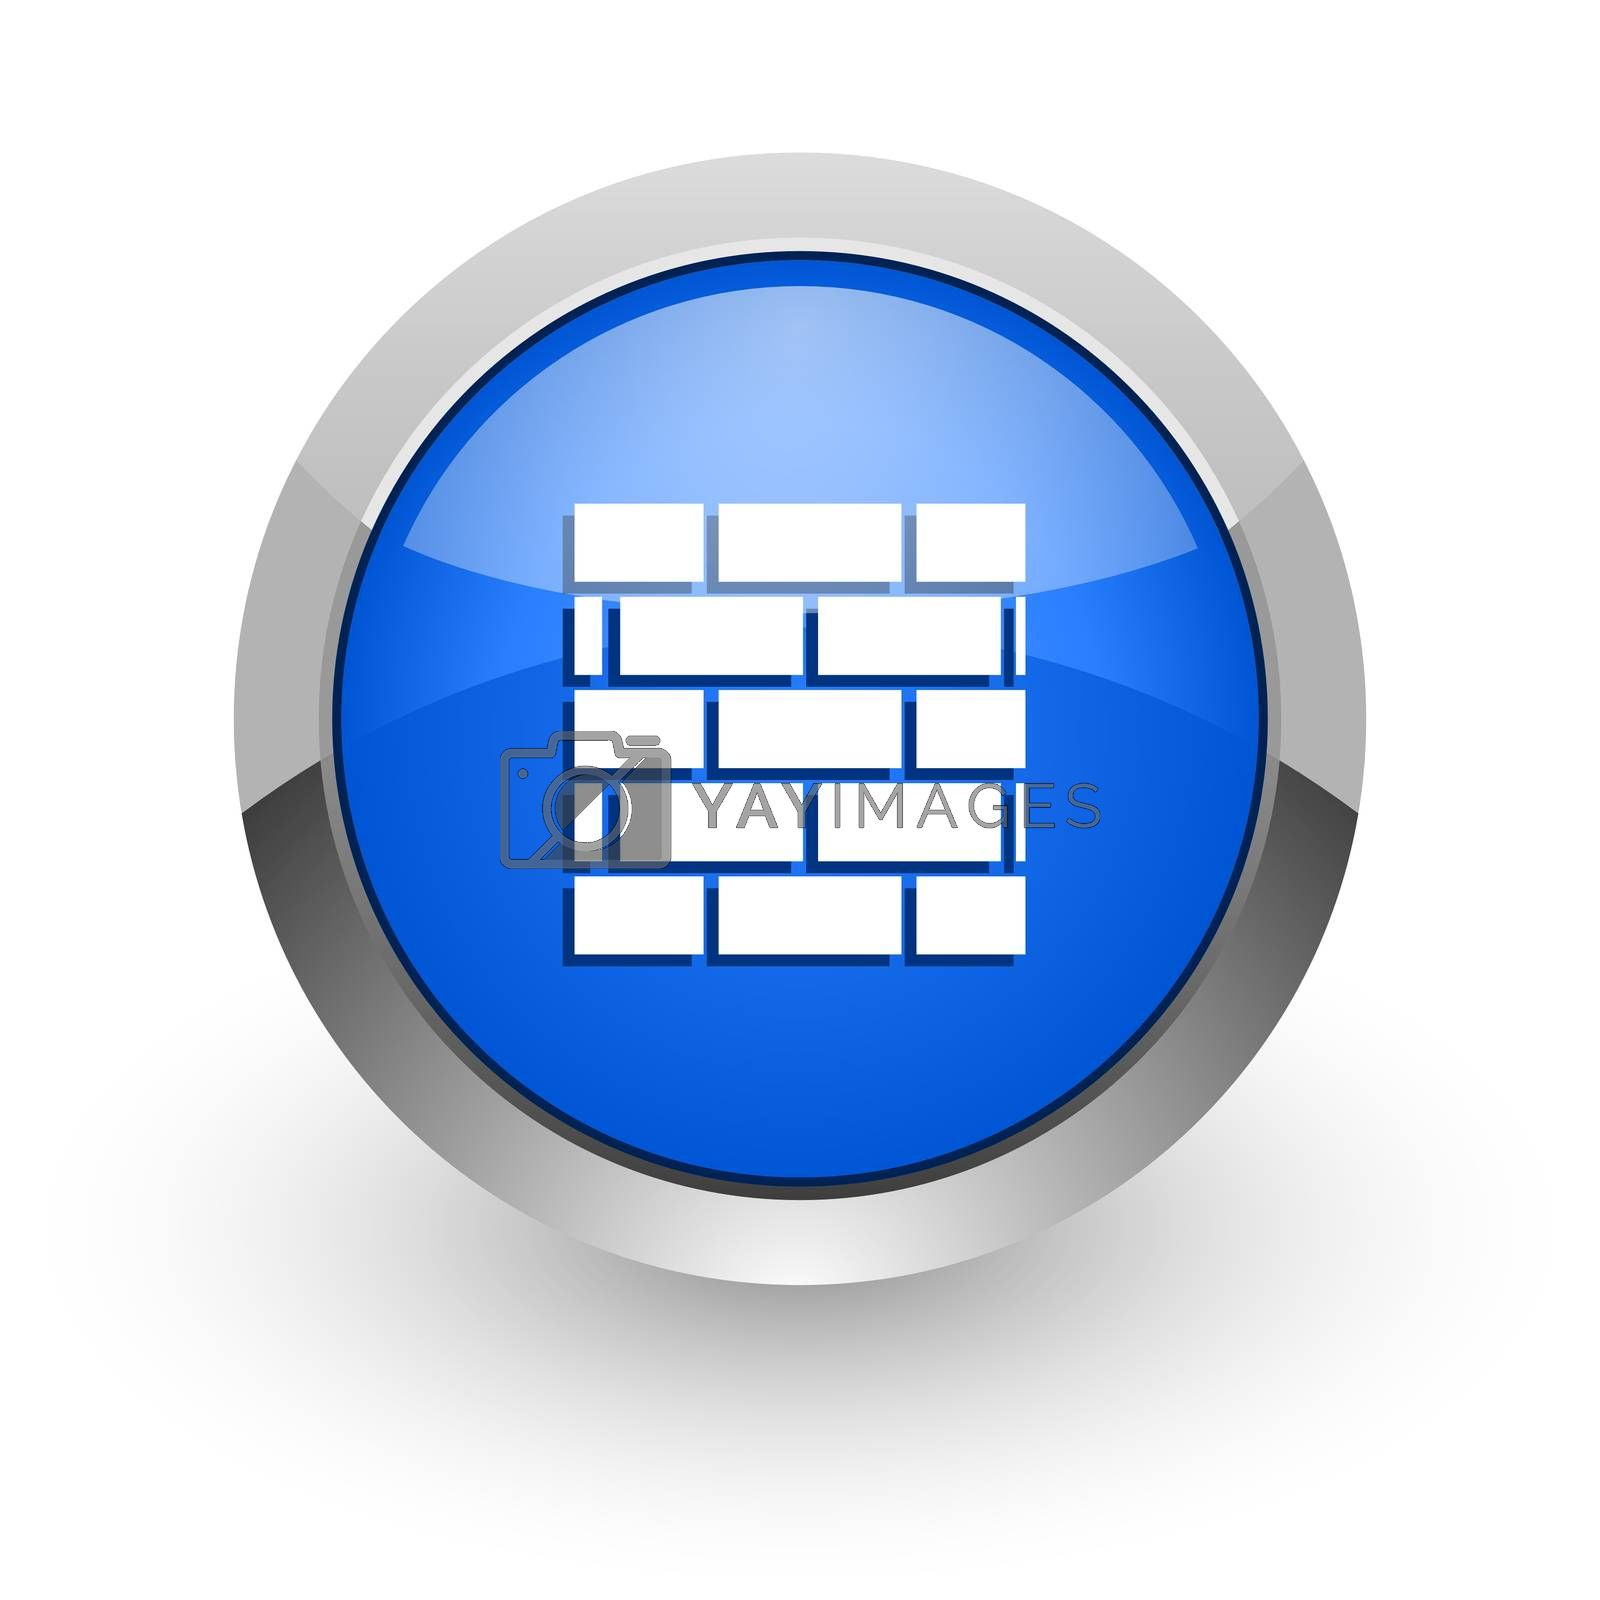 Royalty free image of firewall blue glossy web icon by alexwhite